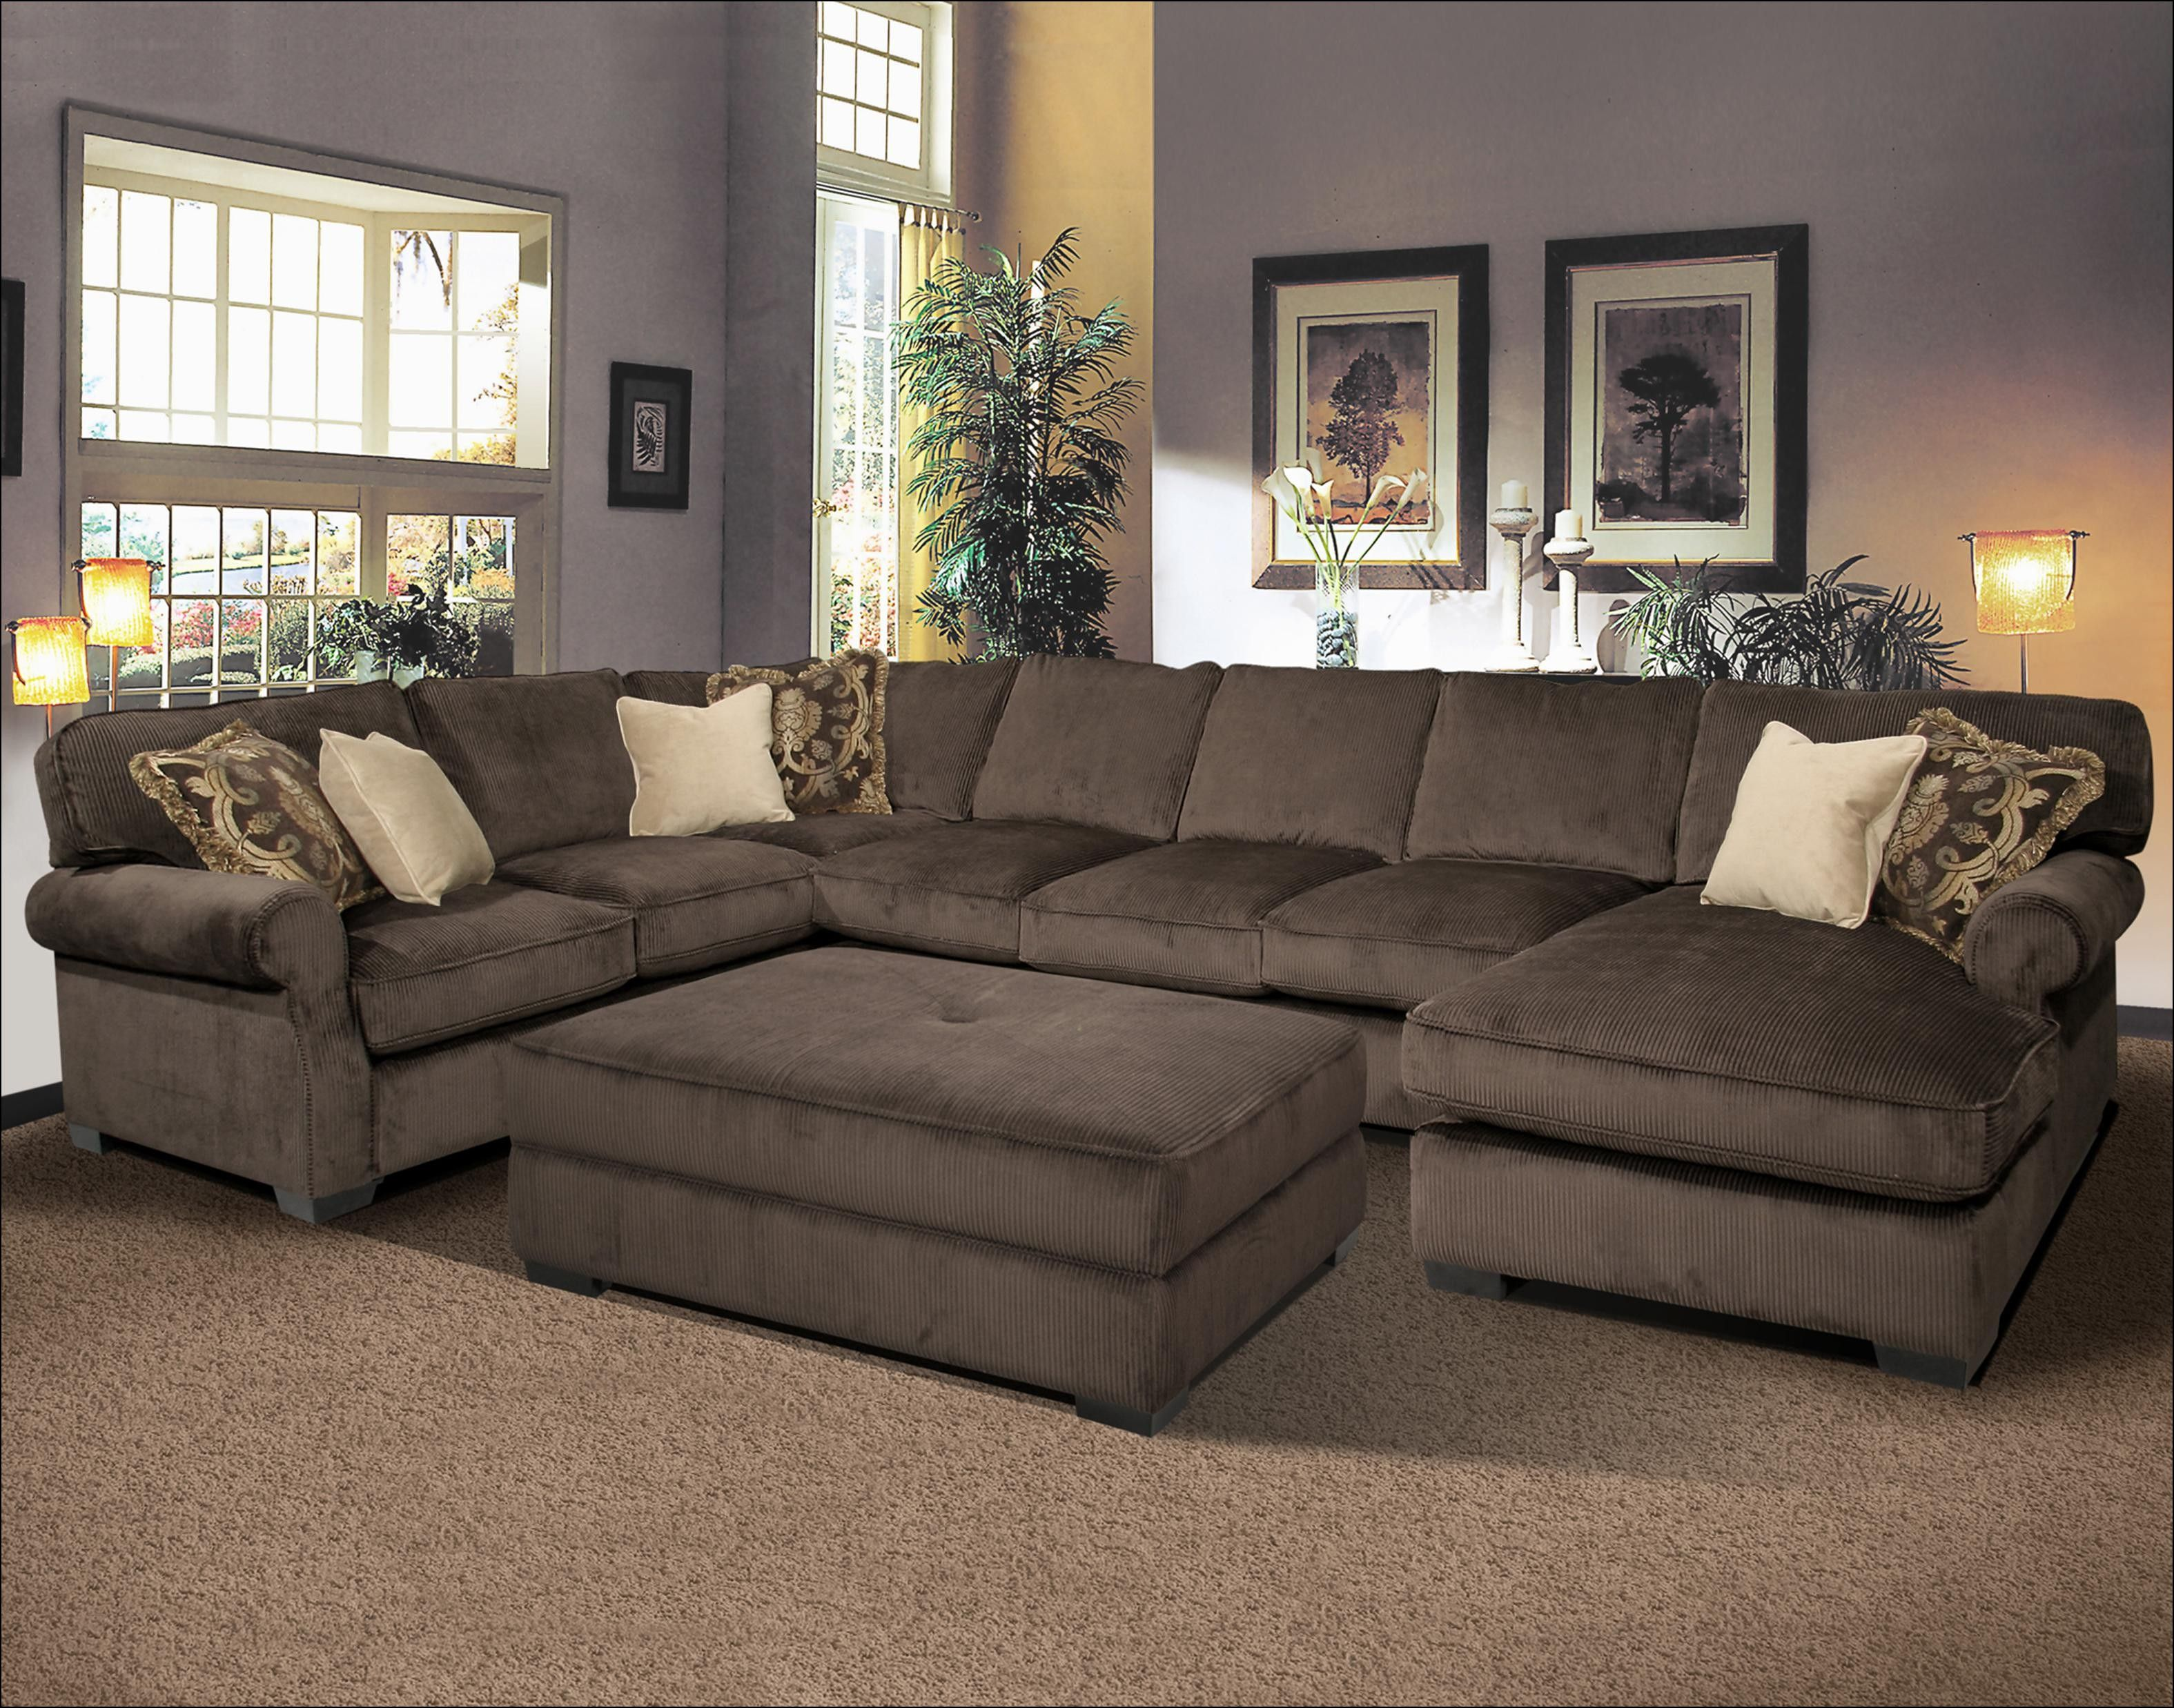 Large Deep Couches Home Furnishings Home Home Decor